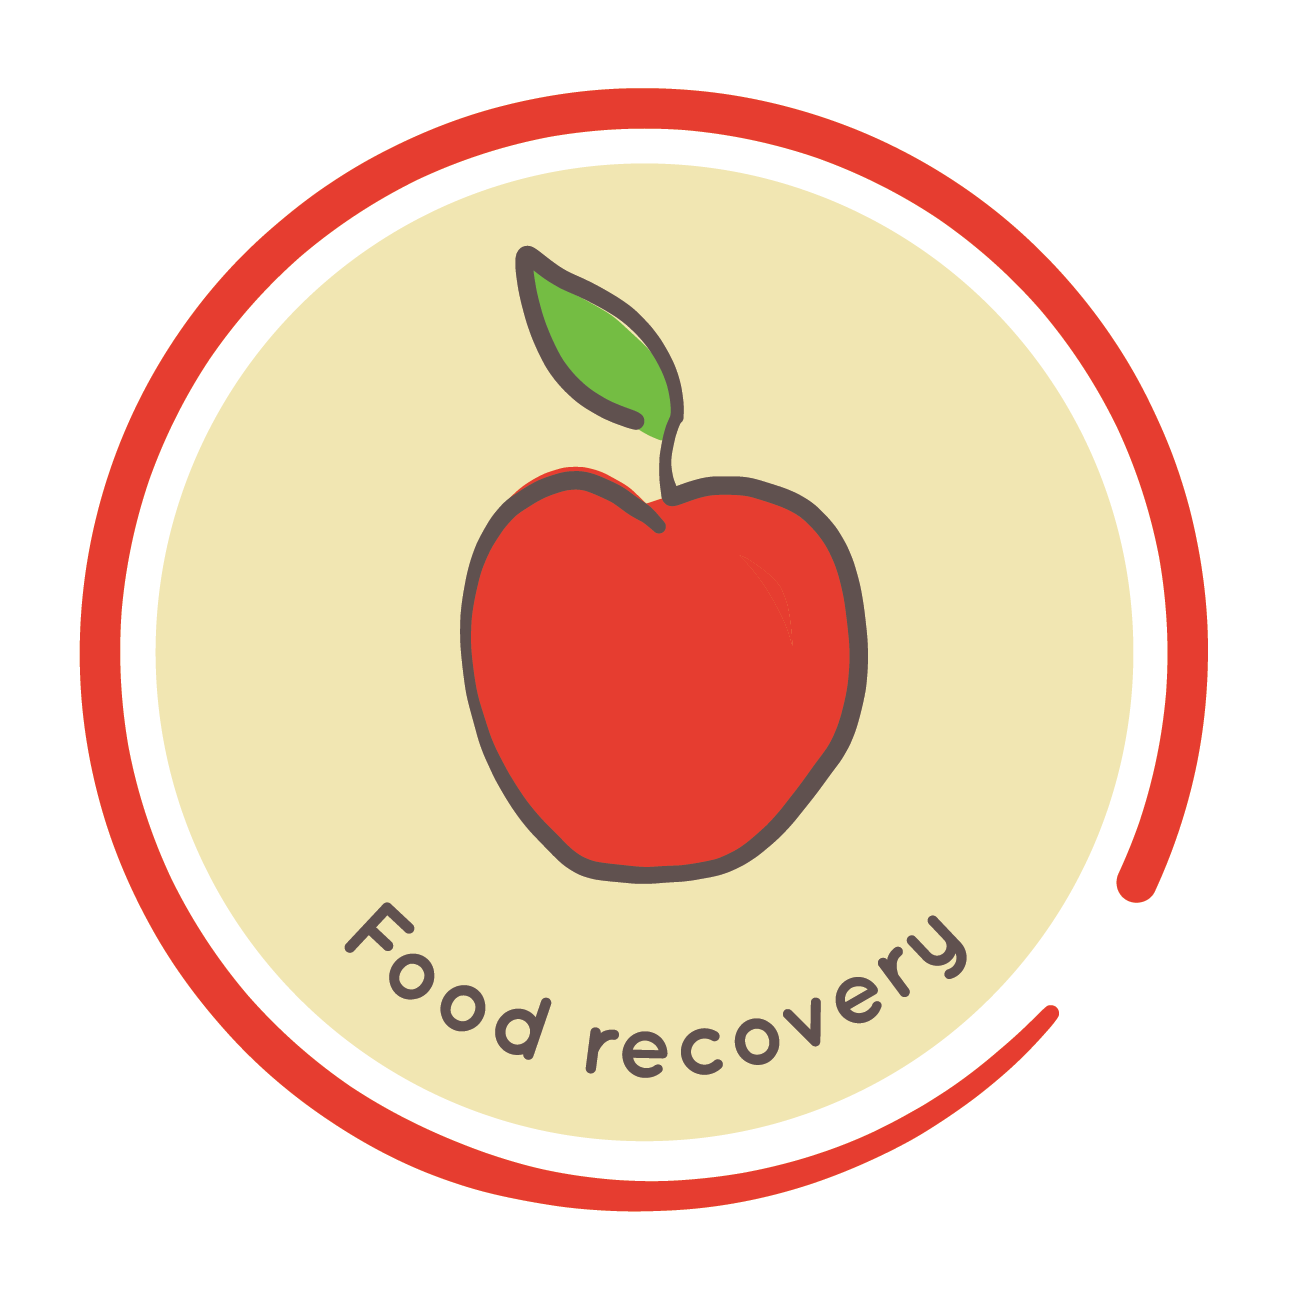 badge_food_recovery.png